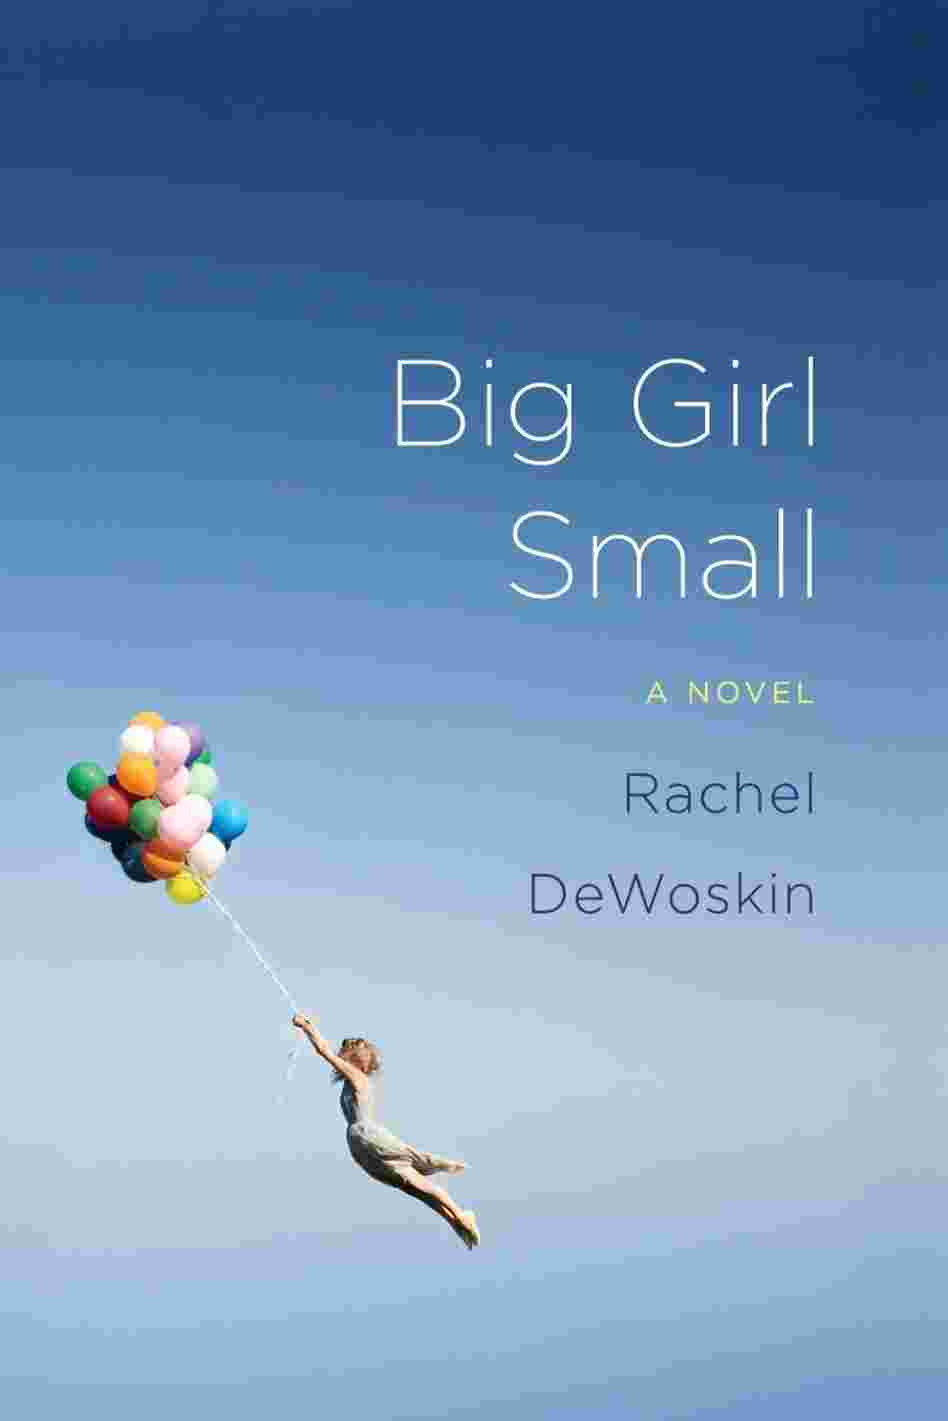 Big Girl Small by Rachel Dewoskin